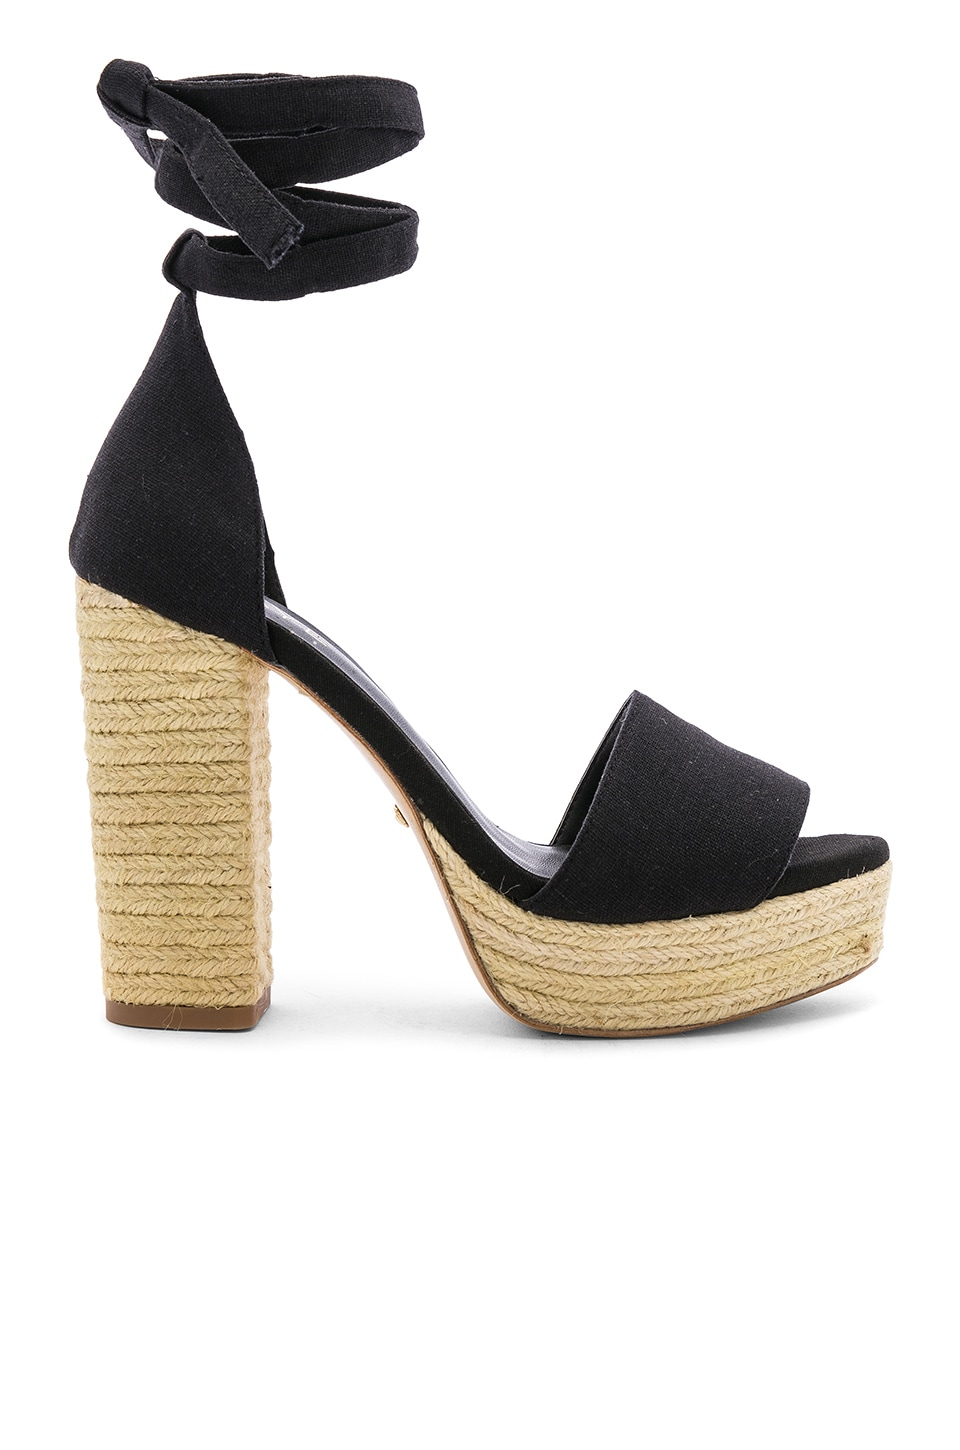 RAYE Aya Heel in Black